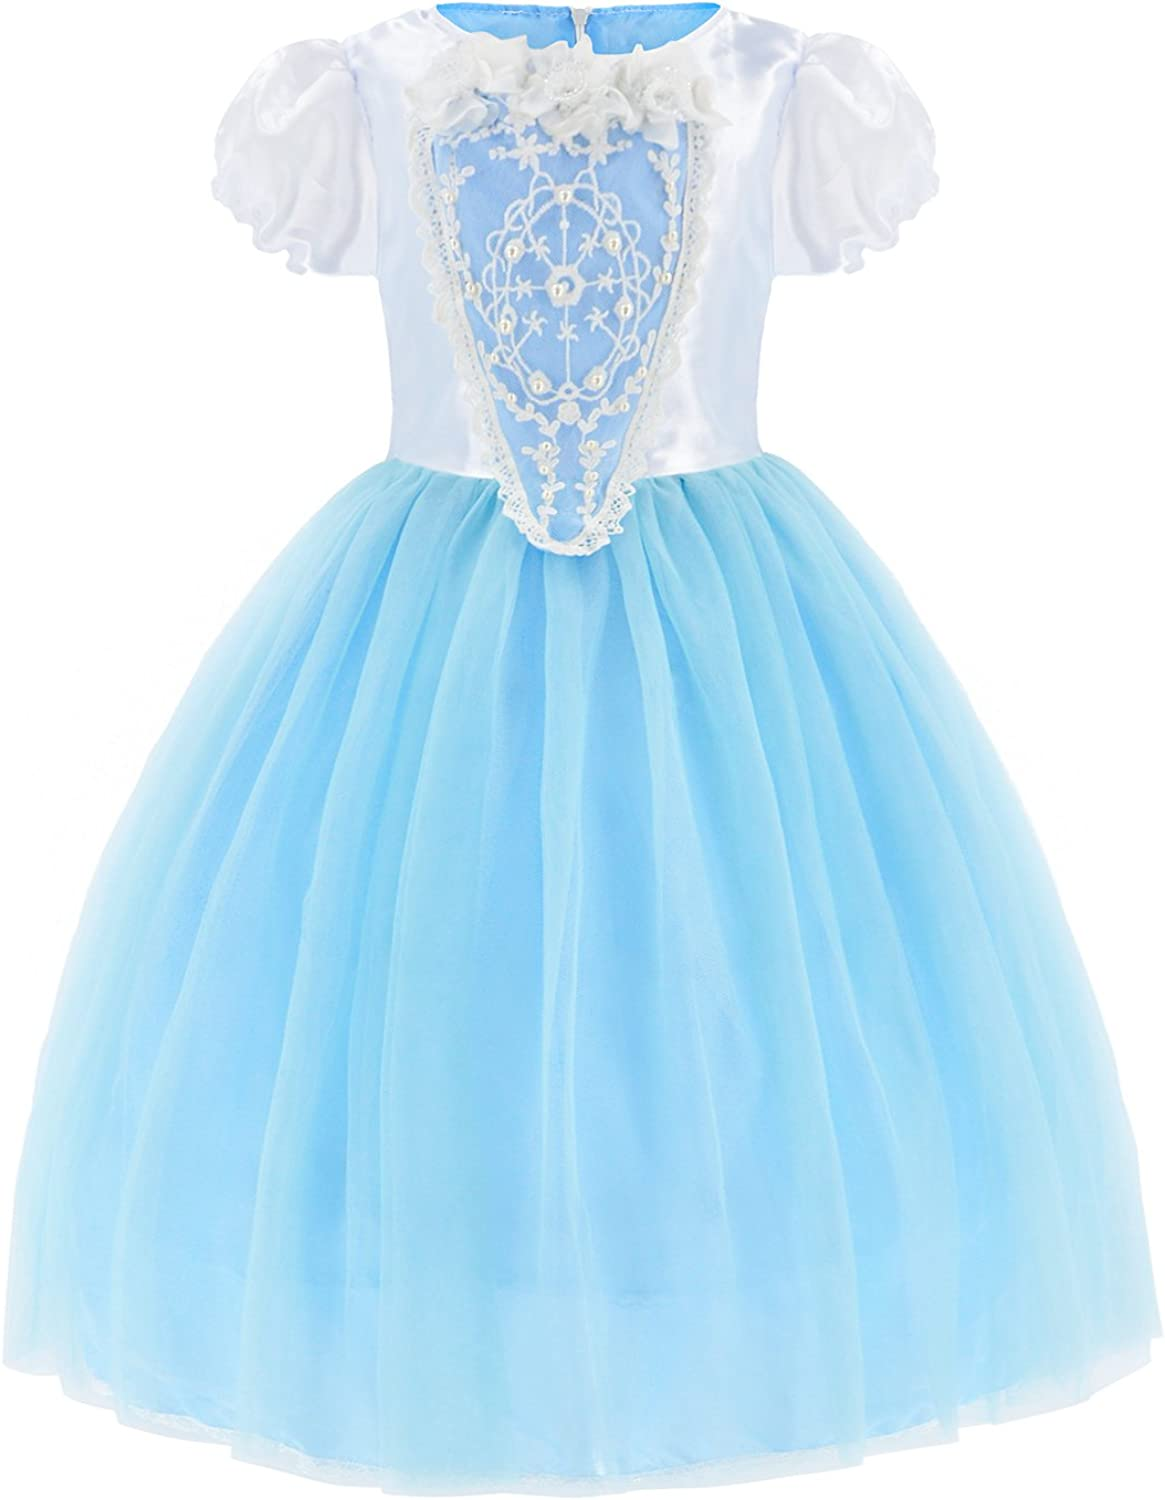 MetCuento Girls Princess Costume Dress up Skirt Set Christmas Birthday Party Cosplay Fancy Dresses 1-8 Years